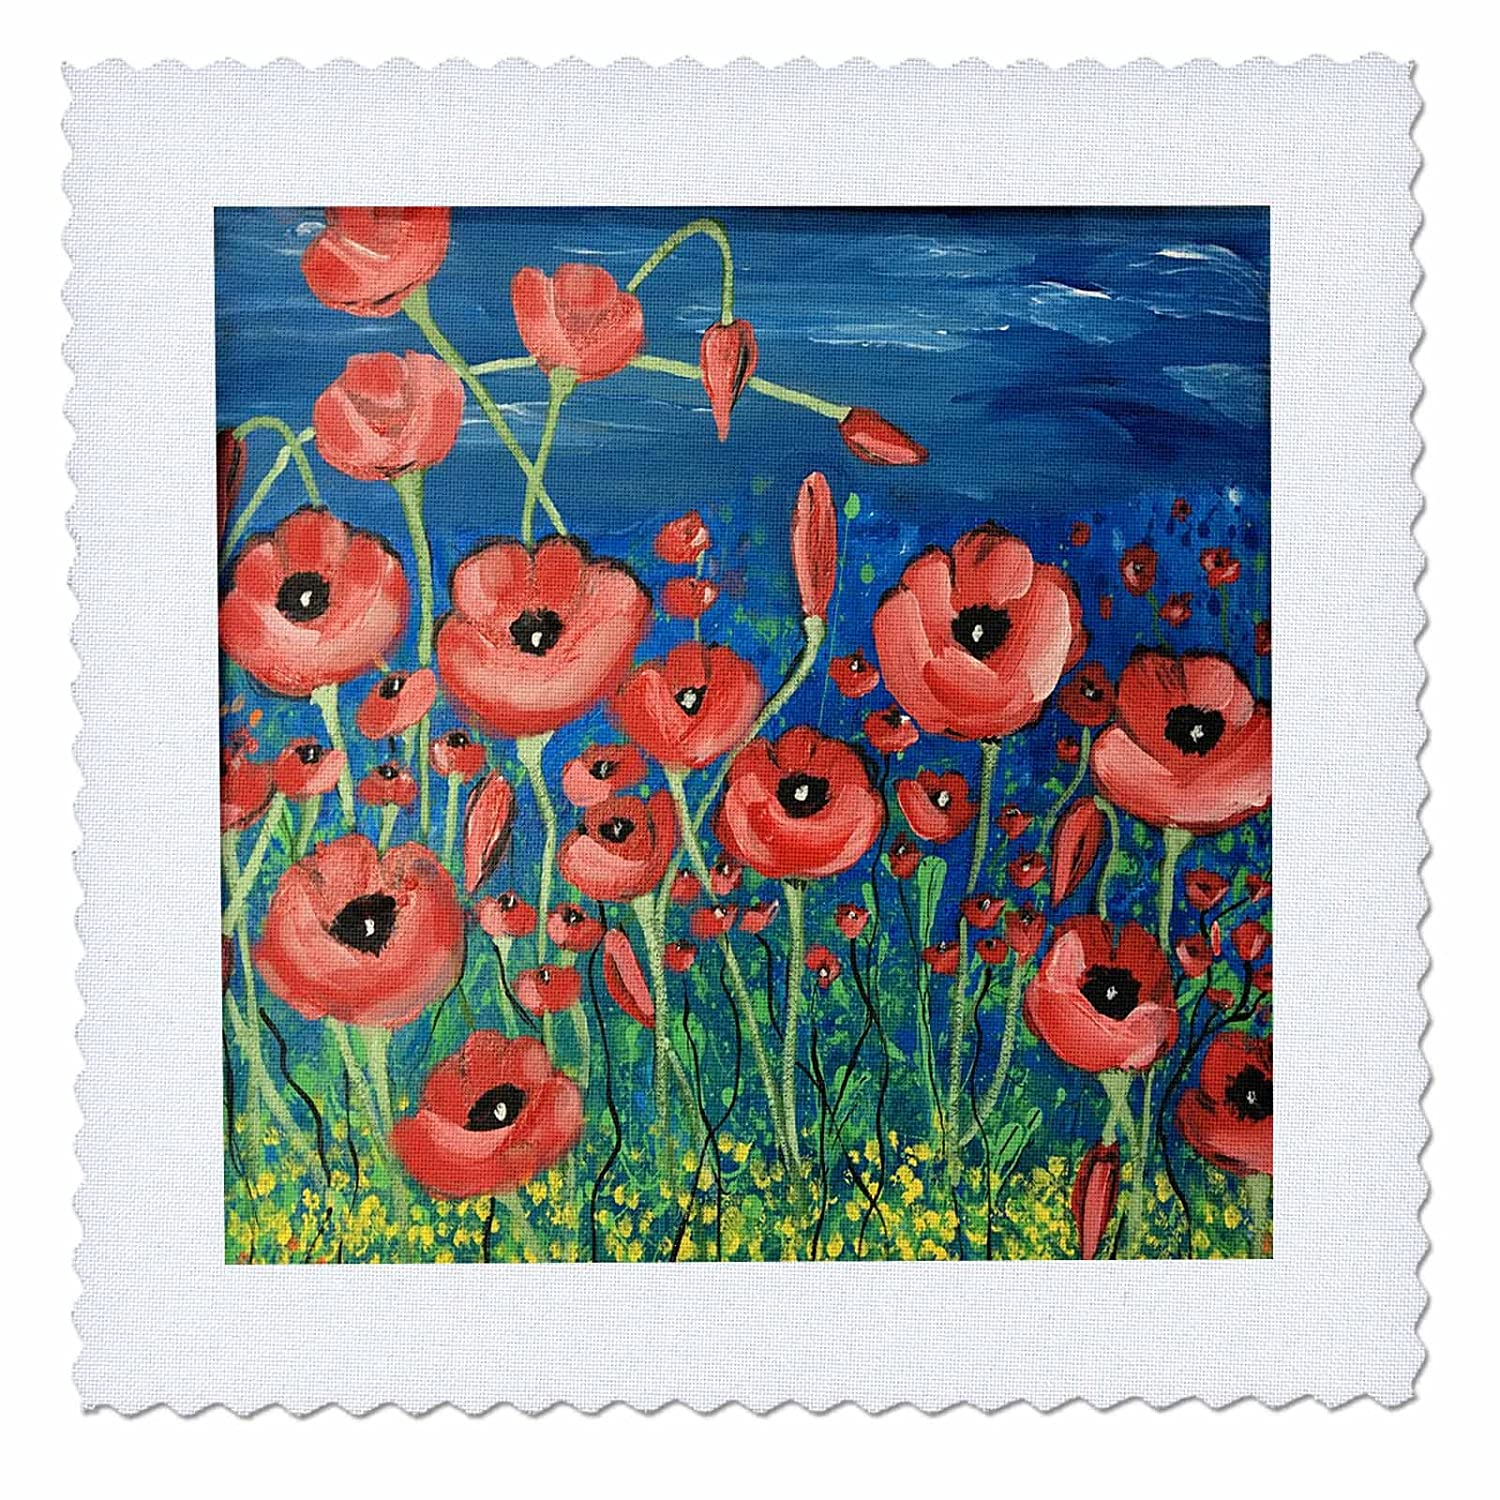 3drose dinzas art nature image of red poppy flowers on blue 3drose dinzas art nature image of red poppy flowers on blue background 22x22 inch mightylinksfo